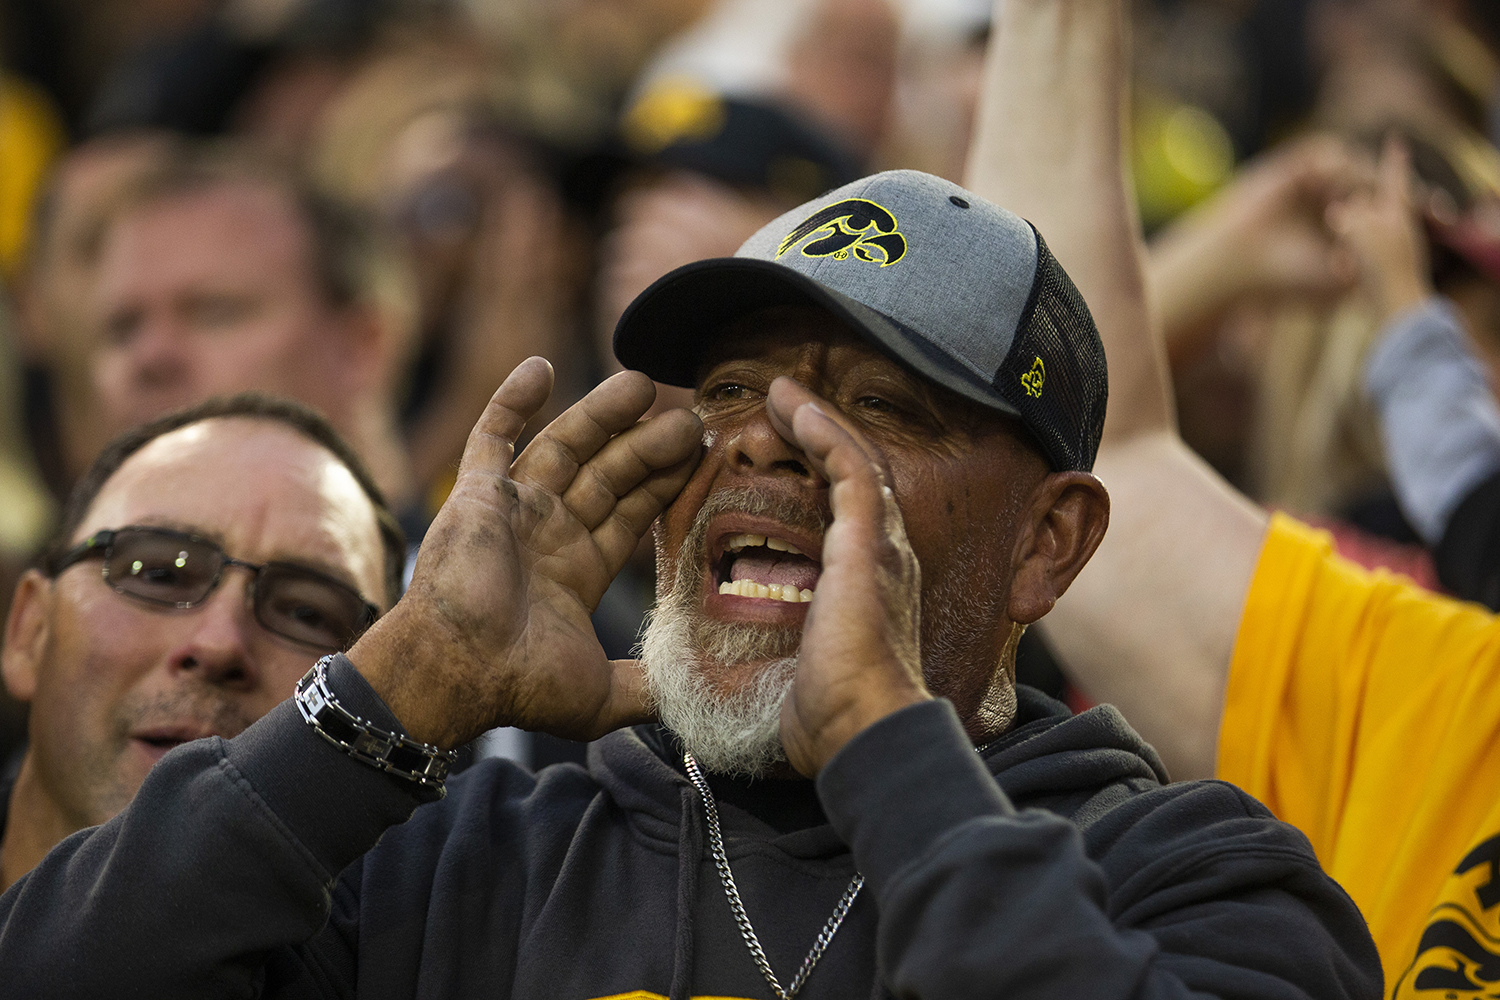 A+fan+reacts+during+the+football+game+against+Miami+%28Ohio%29+at+Kinnick+Stadium+on+Saturday%2C+August+31%2C+2019.+The+Hawkeyes+defeated+the+RedHawks+38-14.